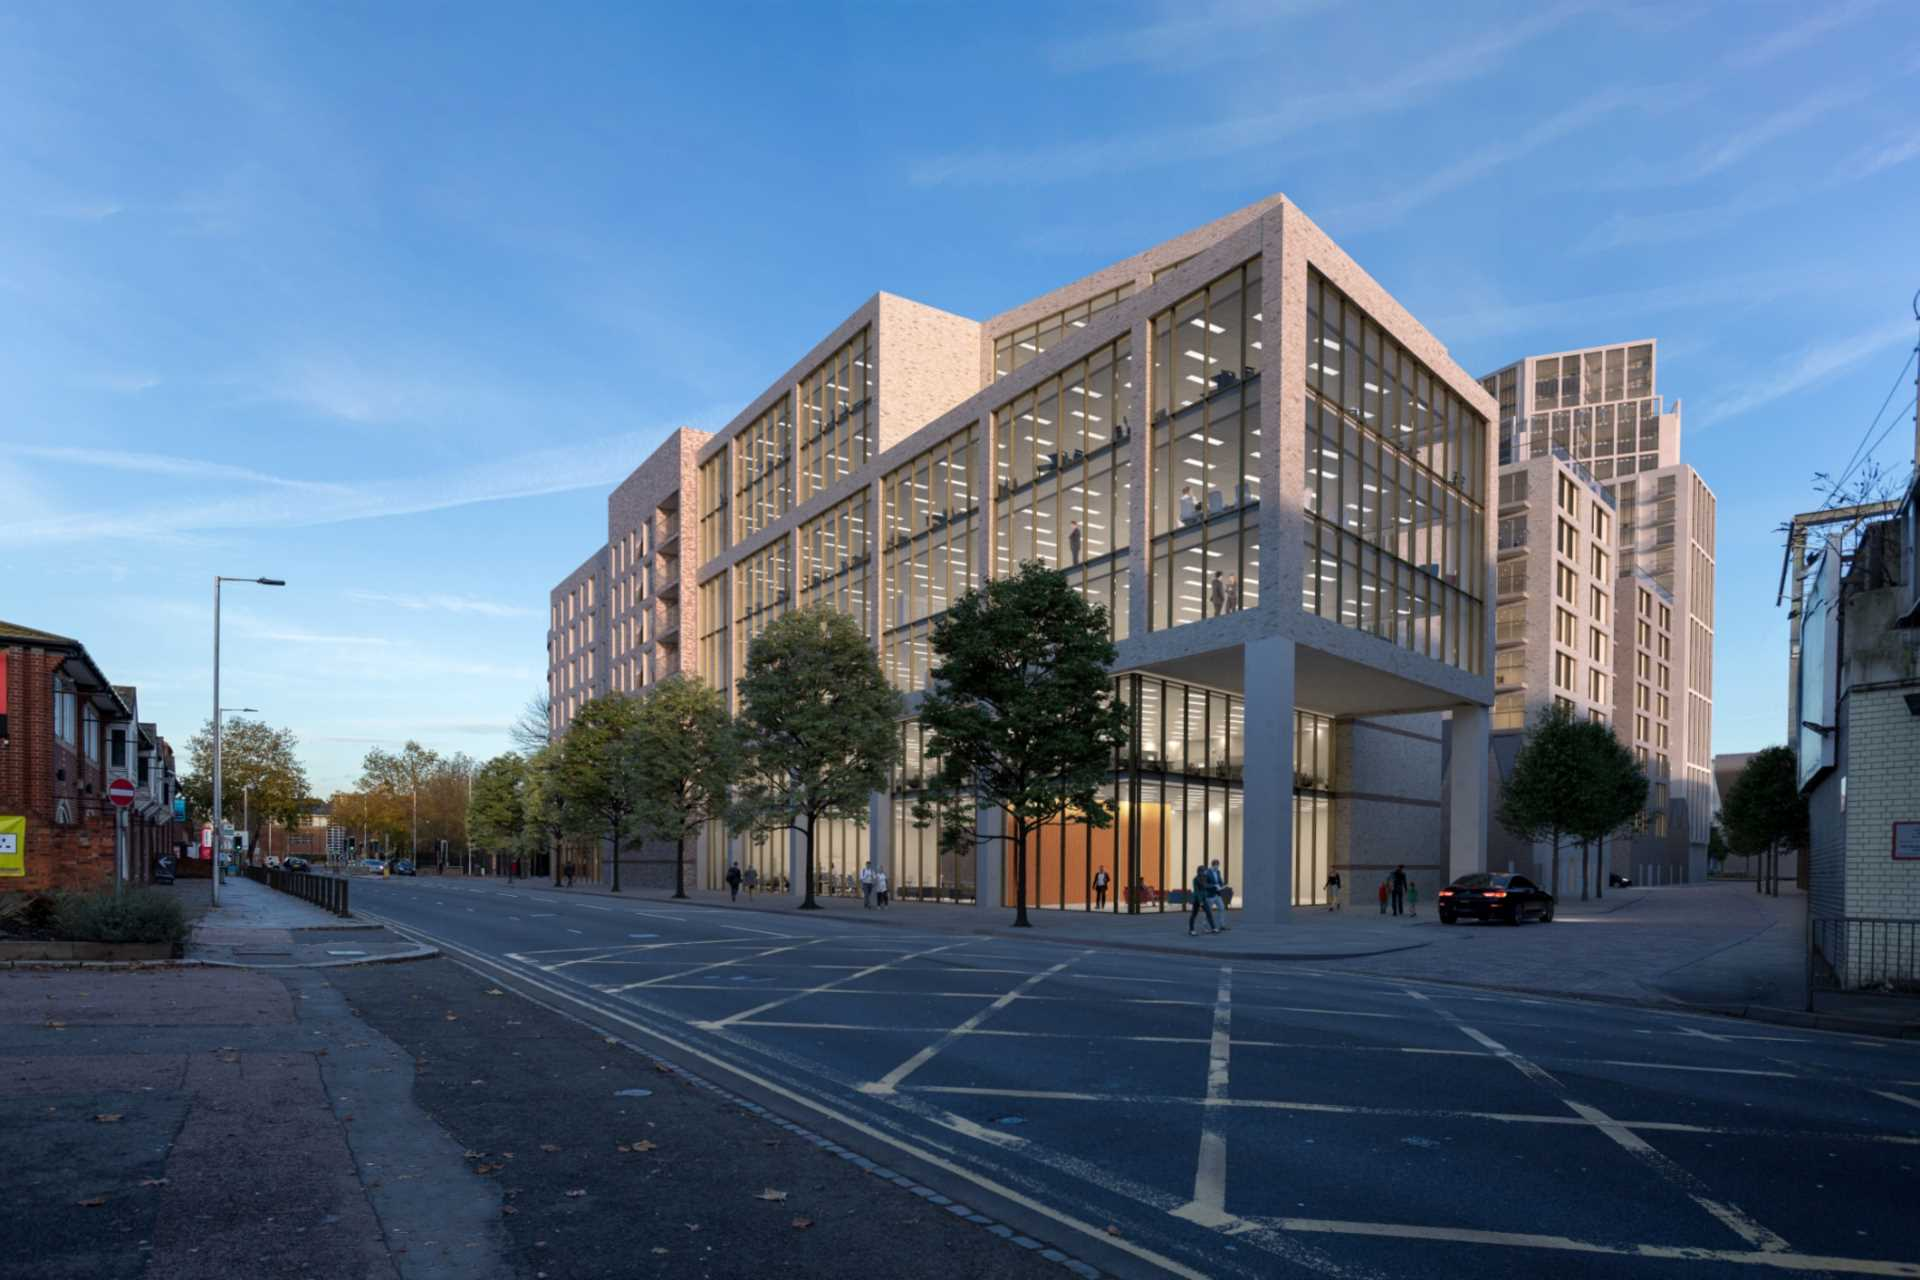 Designs for 650 home development on former Reading Royal Mail site revealed